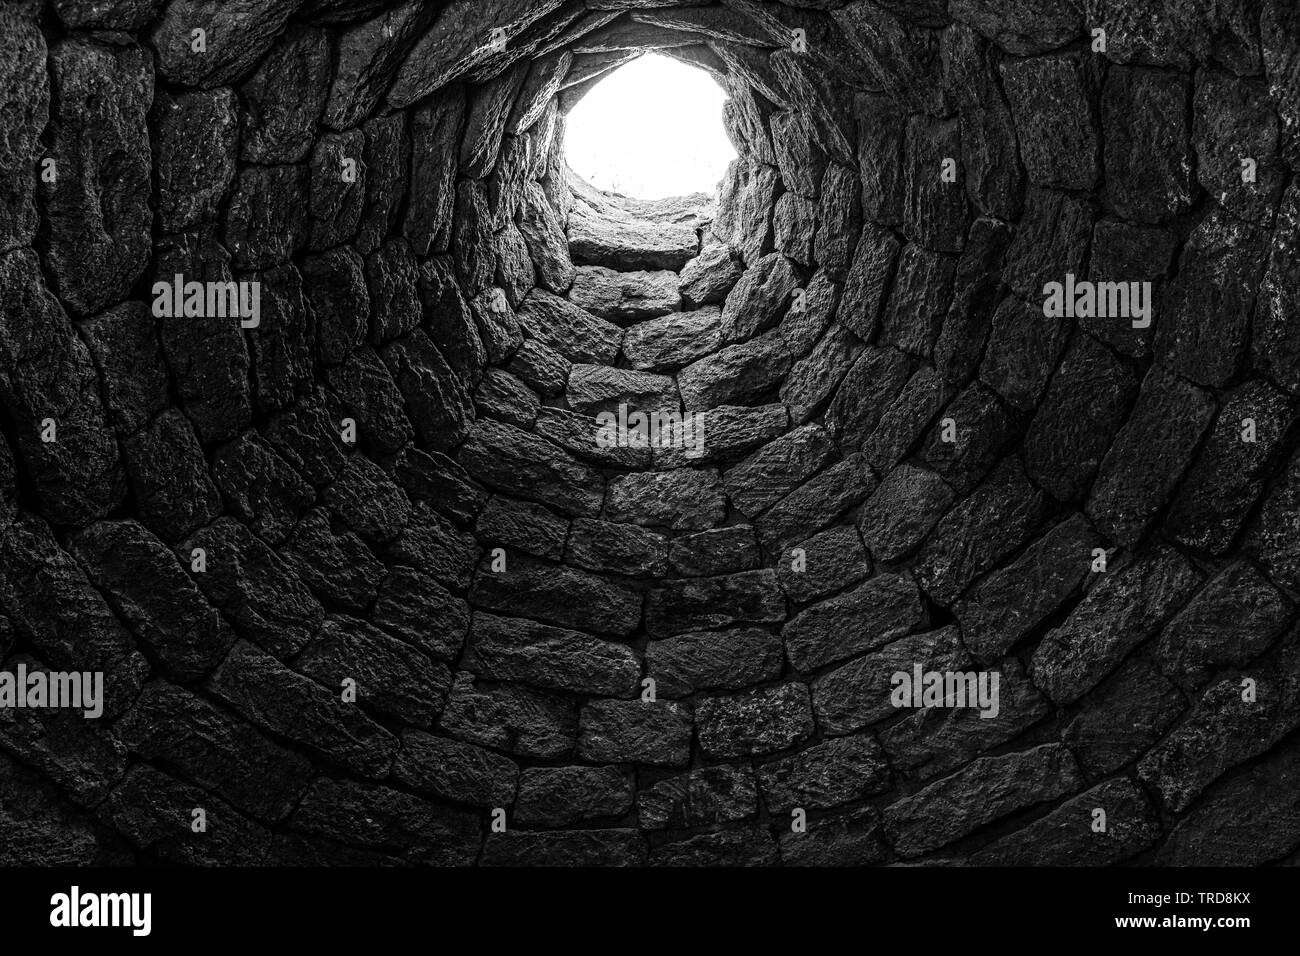 Deep ancient well inside - Stock Image